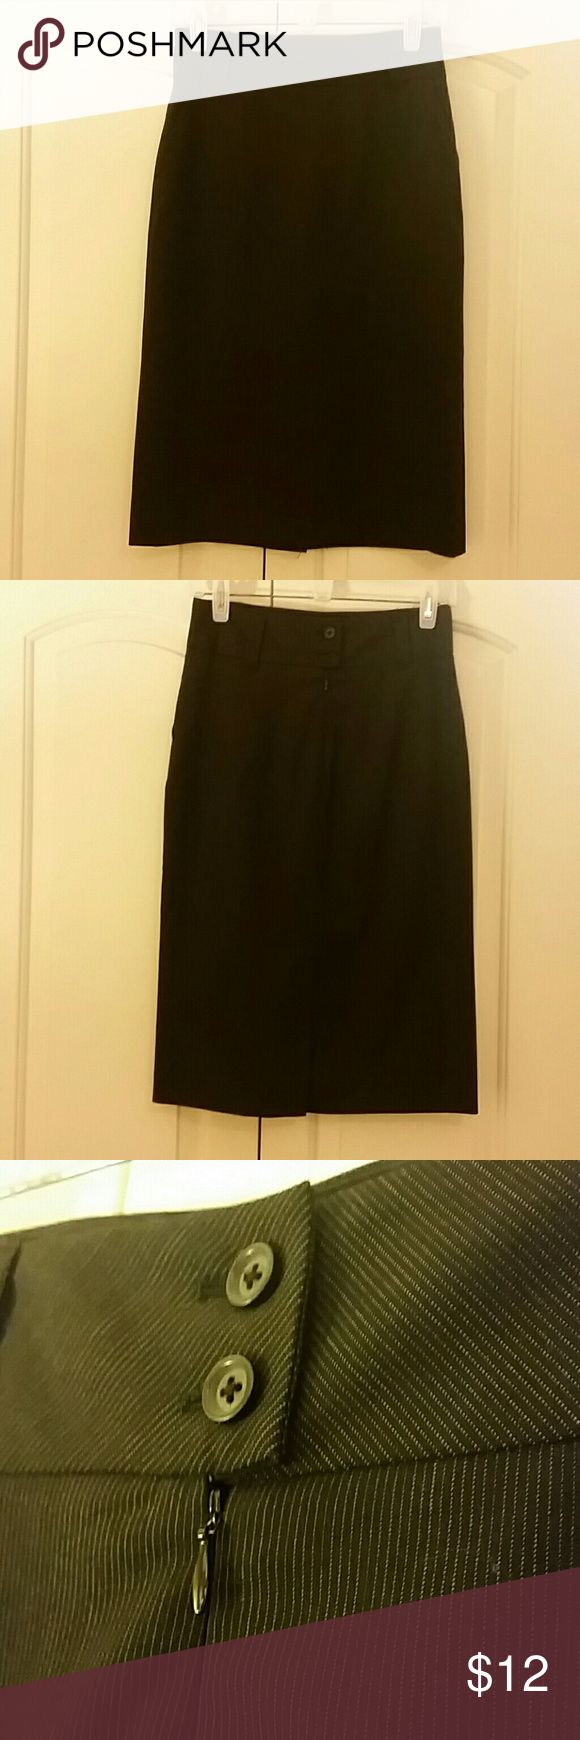 """Banana Republic fitted classic pencil skirt. Black pencil skirt with subtle stripes. Sits at the waist and fitted throughout. Two buttons and zip closure at the back with an 8"""" slit at the bottom. 26"""" length Banana Republic Skirts Pencil"""